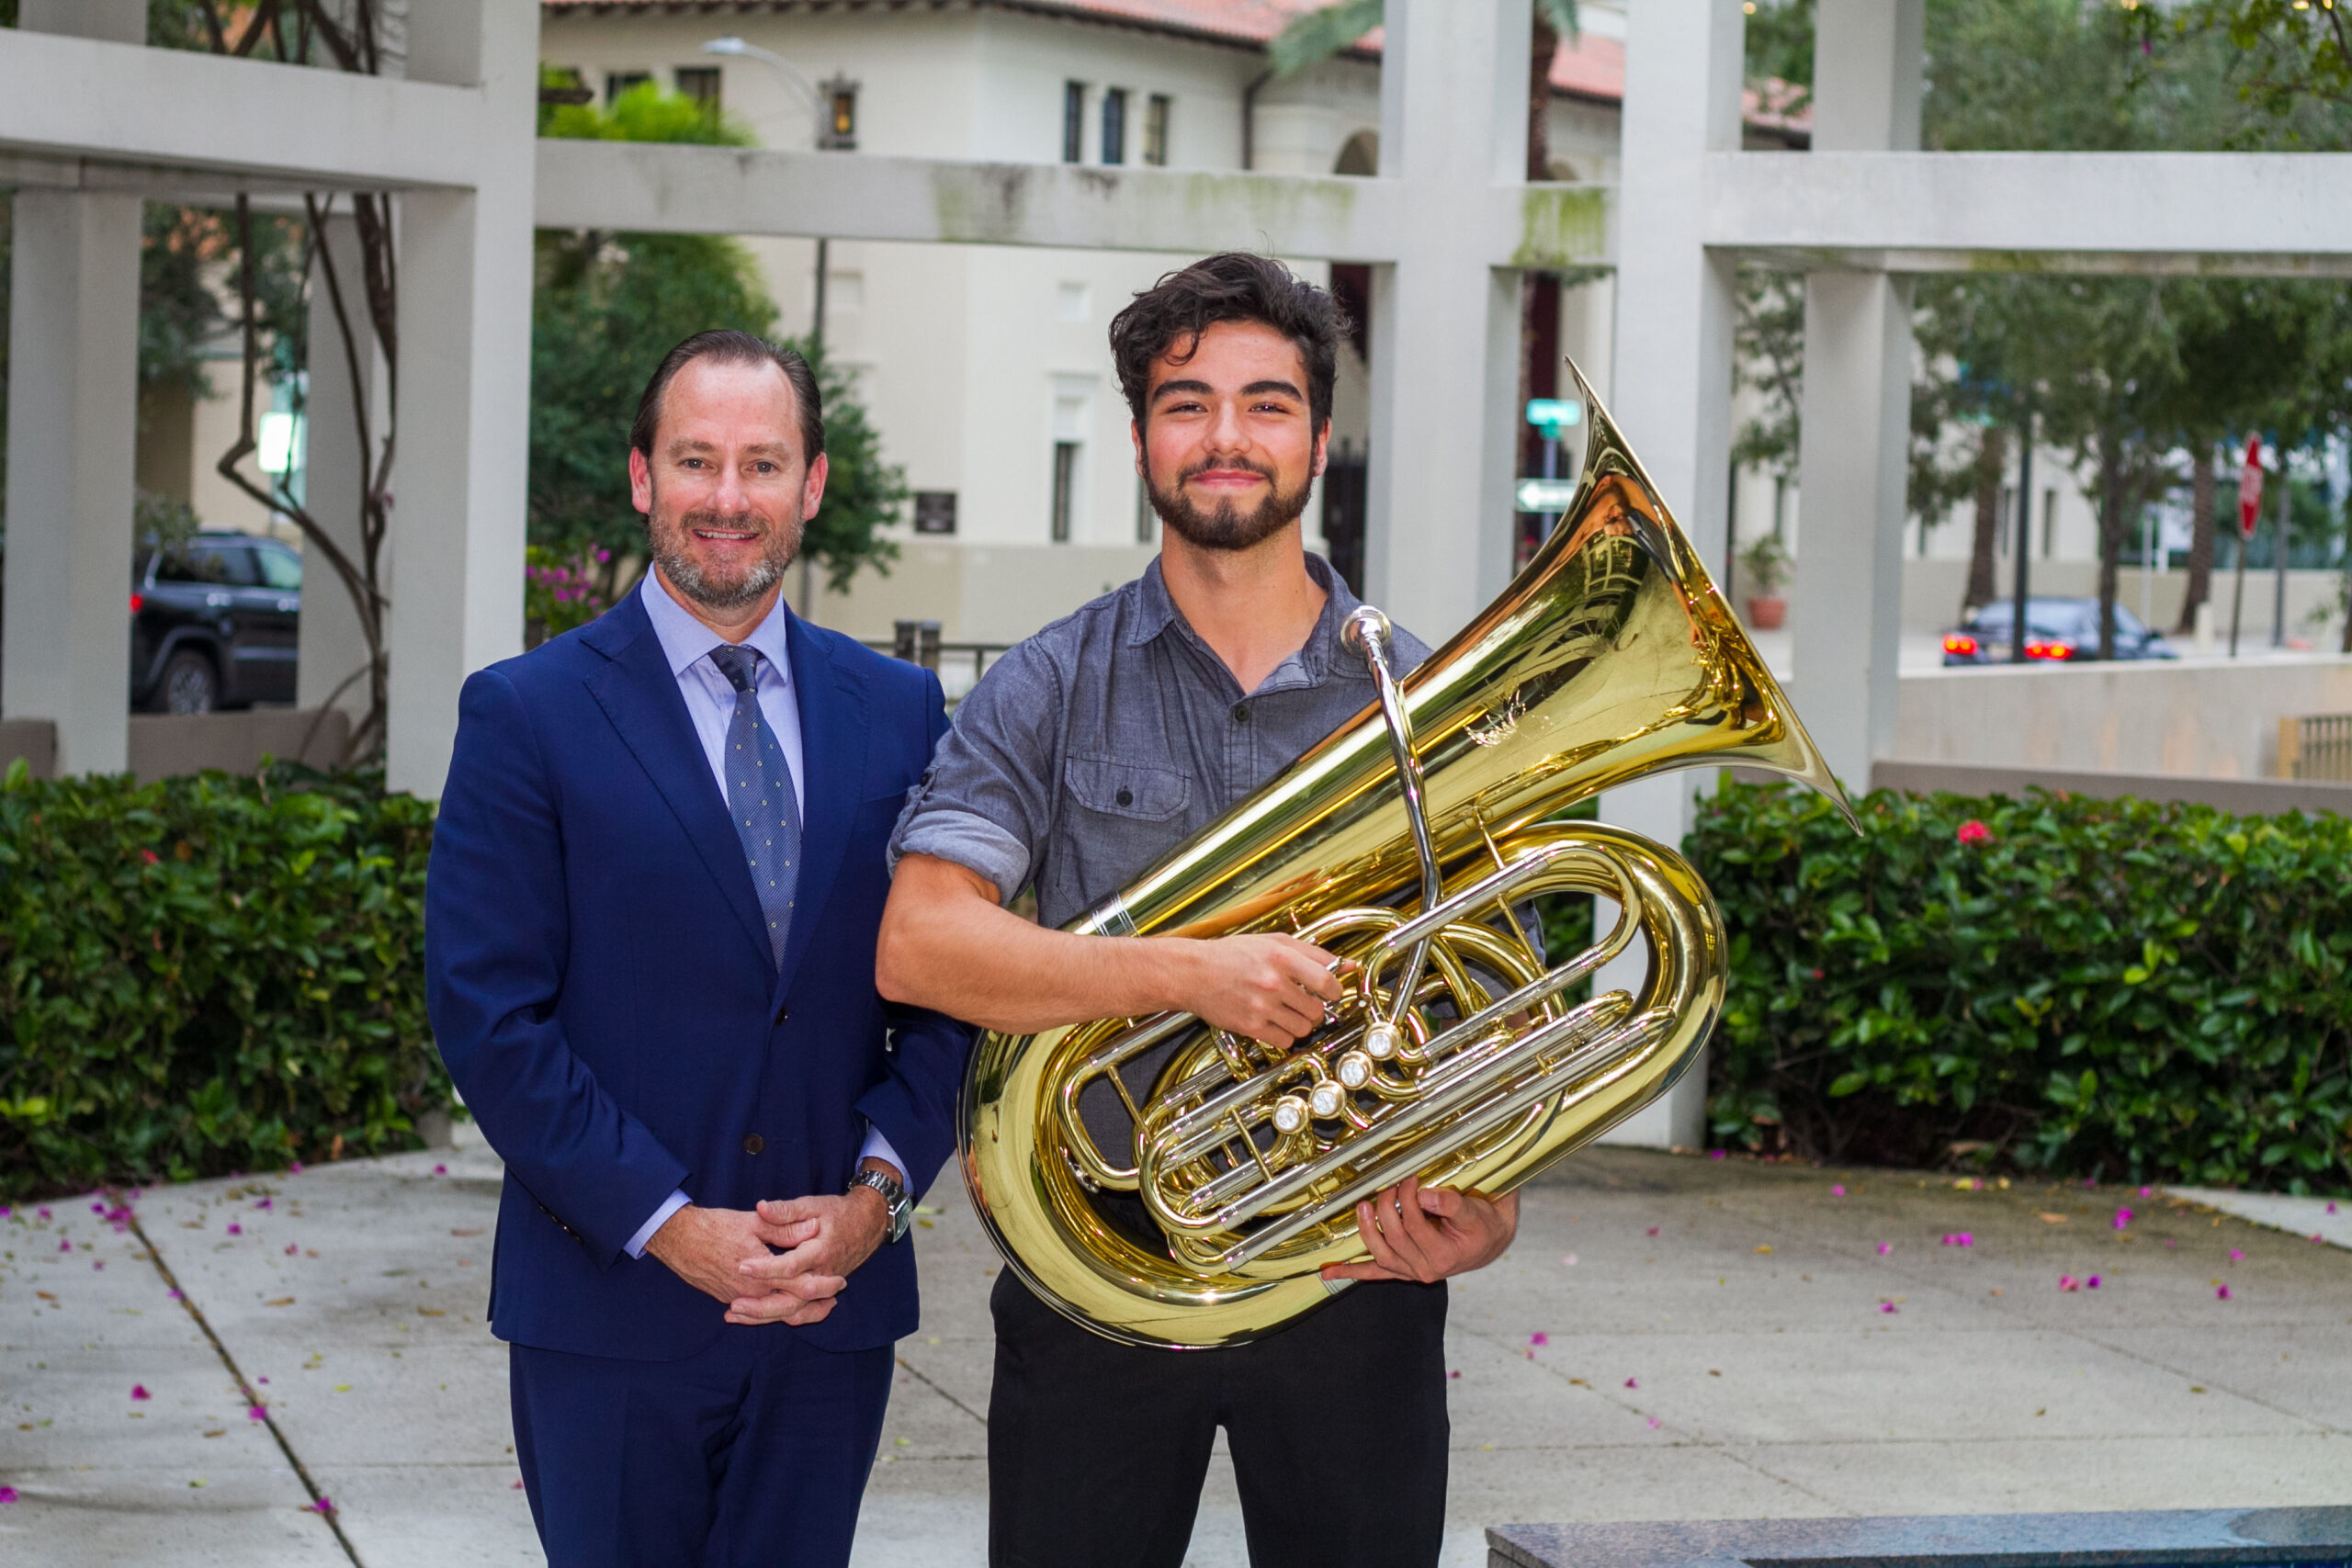 Palm Beach Symphony Seeks Instruments to Provide to Local Student Musicians